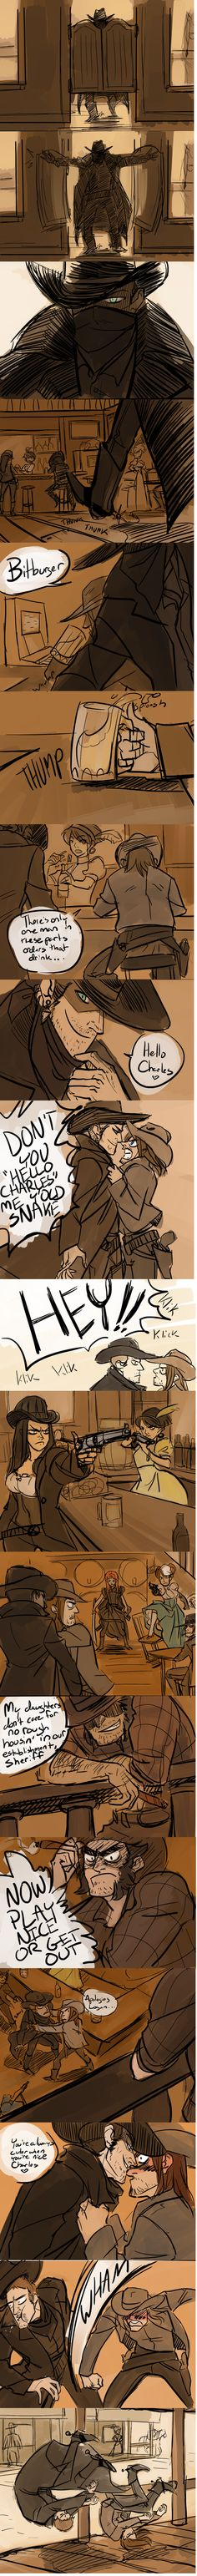 http://hackedmotionsensors.tumblr.com/post/90968086684/part-2-of-western-au-okay-so-honestly-the-real  Cherik Western AU!